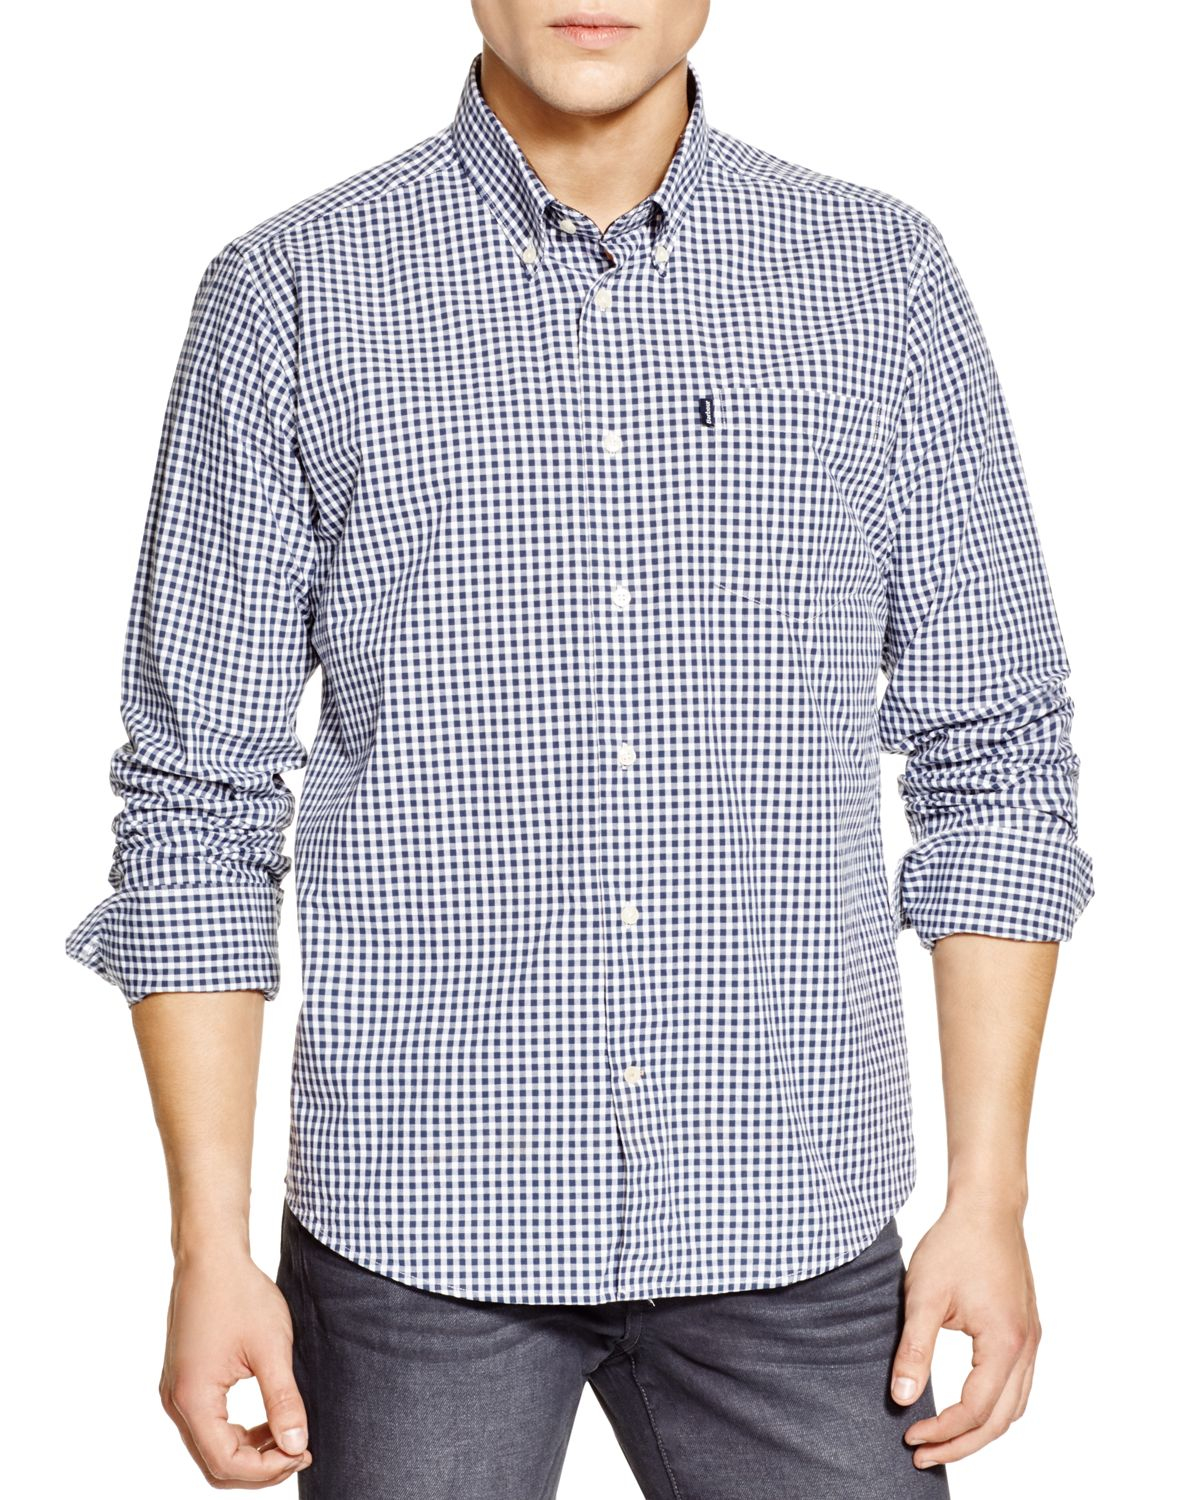 Barbour country gingham regular fit shirt in blue for men for Navy blue gingham shirt